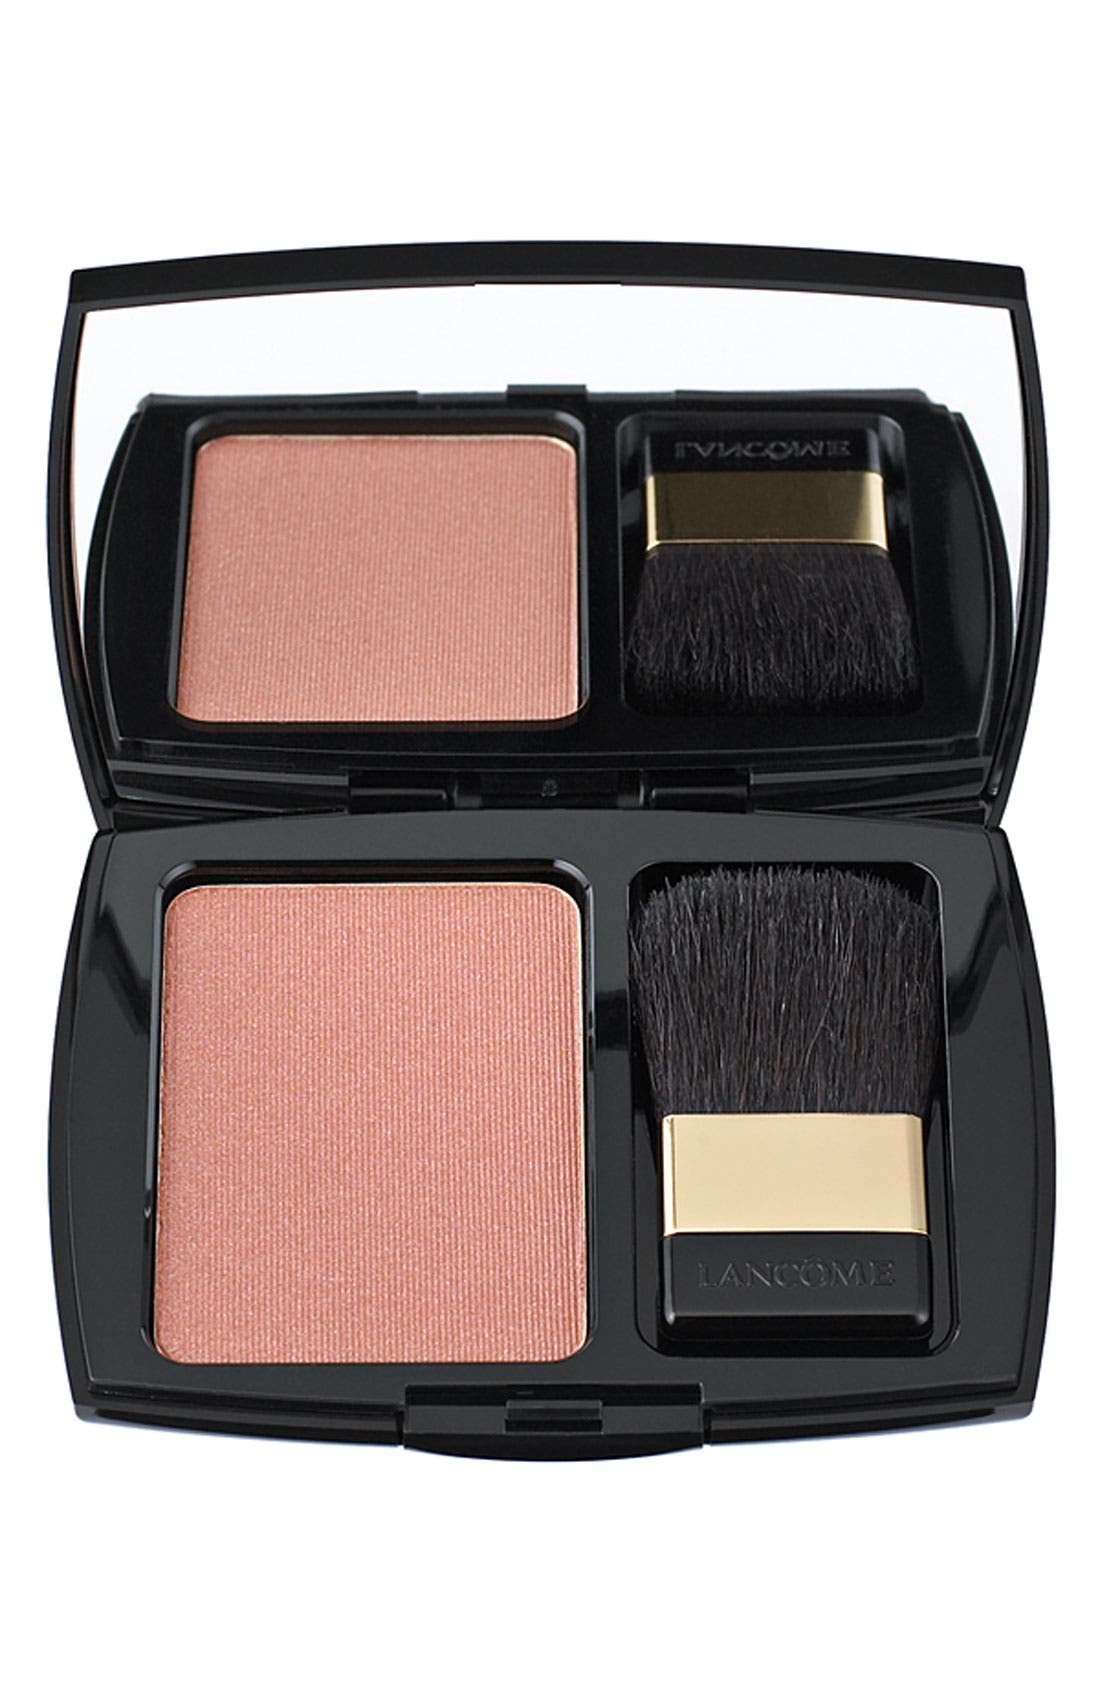 Blush Subtil Shimmer Delicate Oil-Free Powder Blush,                             Main thumbnail 1, color,                             SHIMMER MOCHA HAVANA